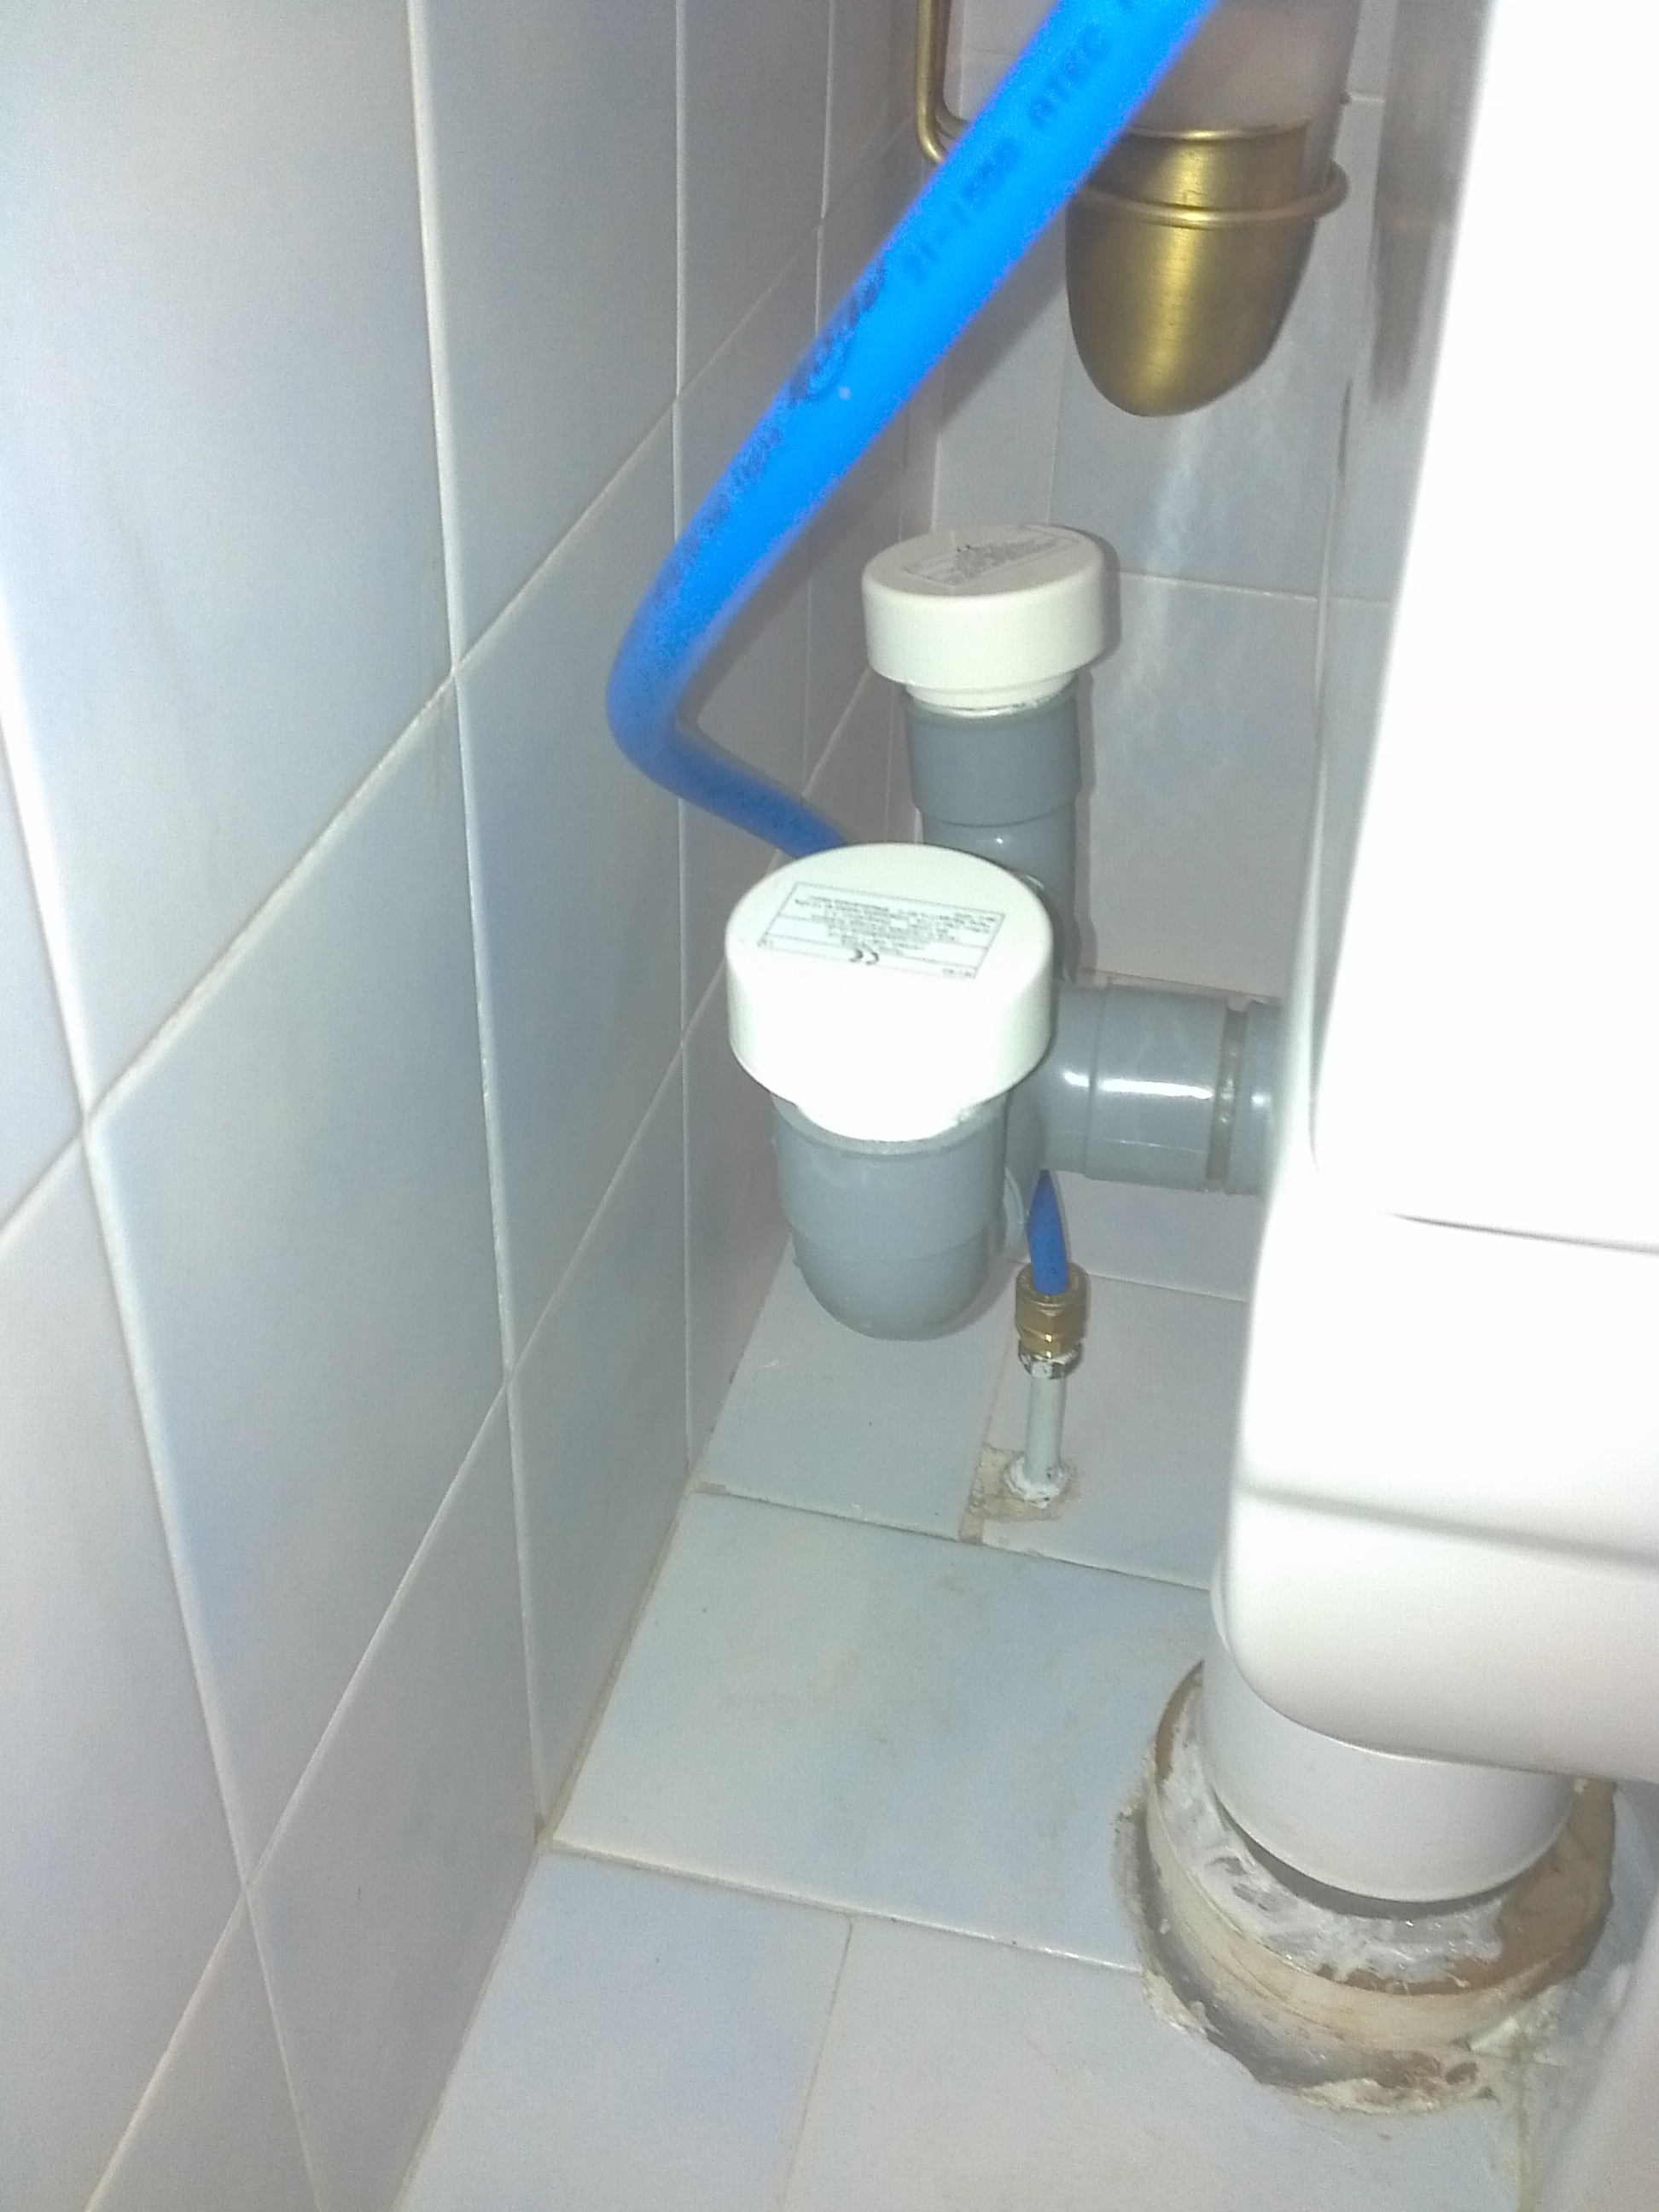 Installer un wc pose d 39 un wc suspendu par leroy merlin for Leroy merlin wc broyeur